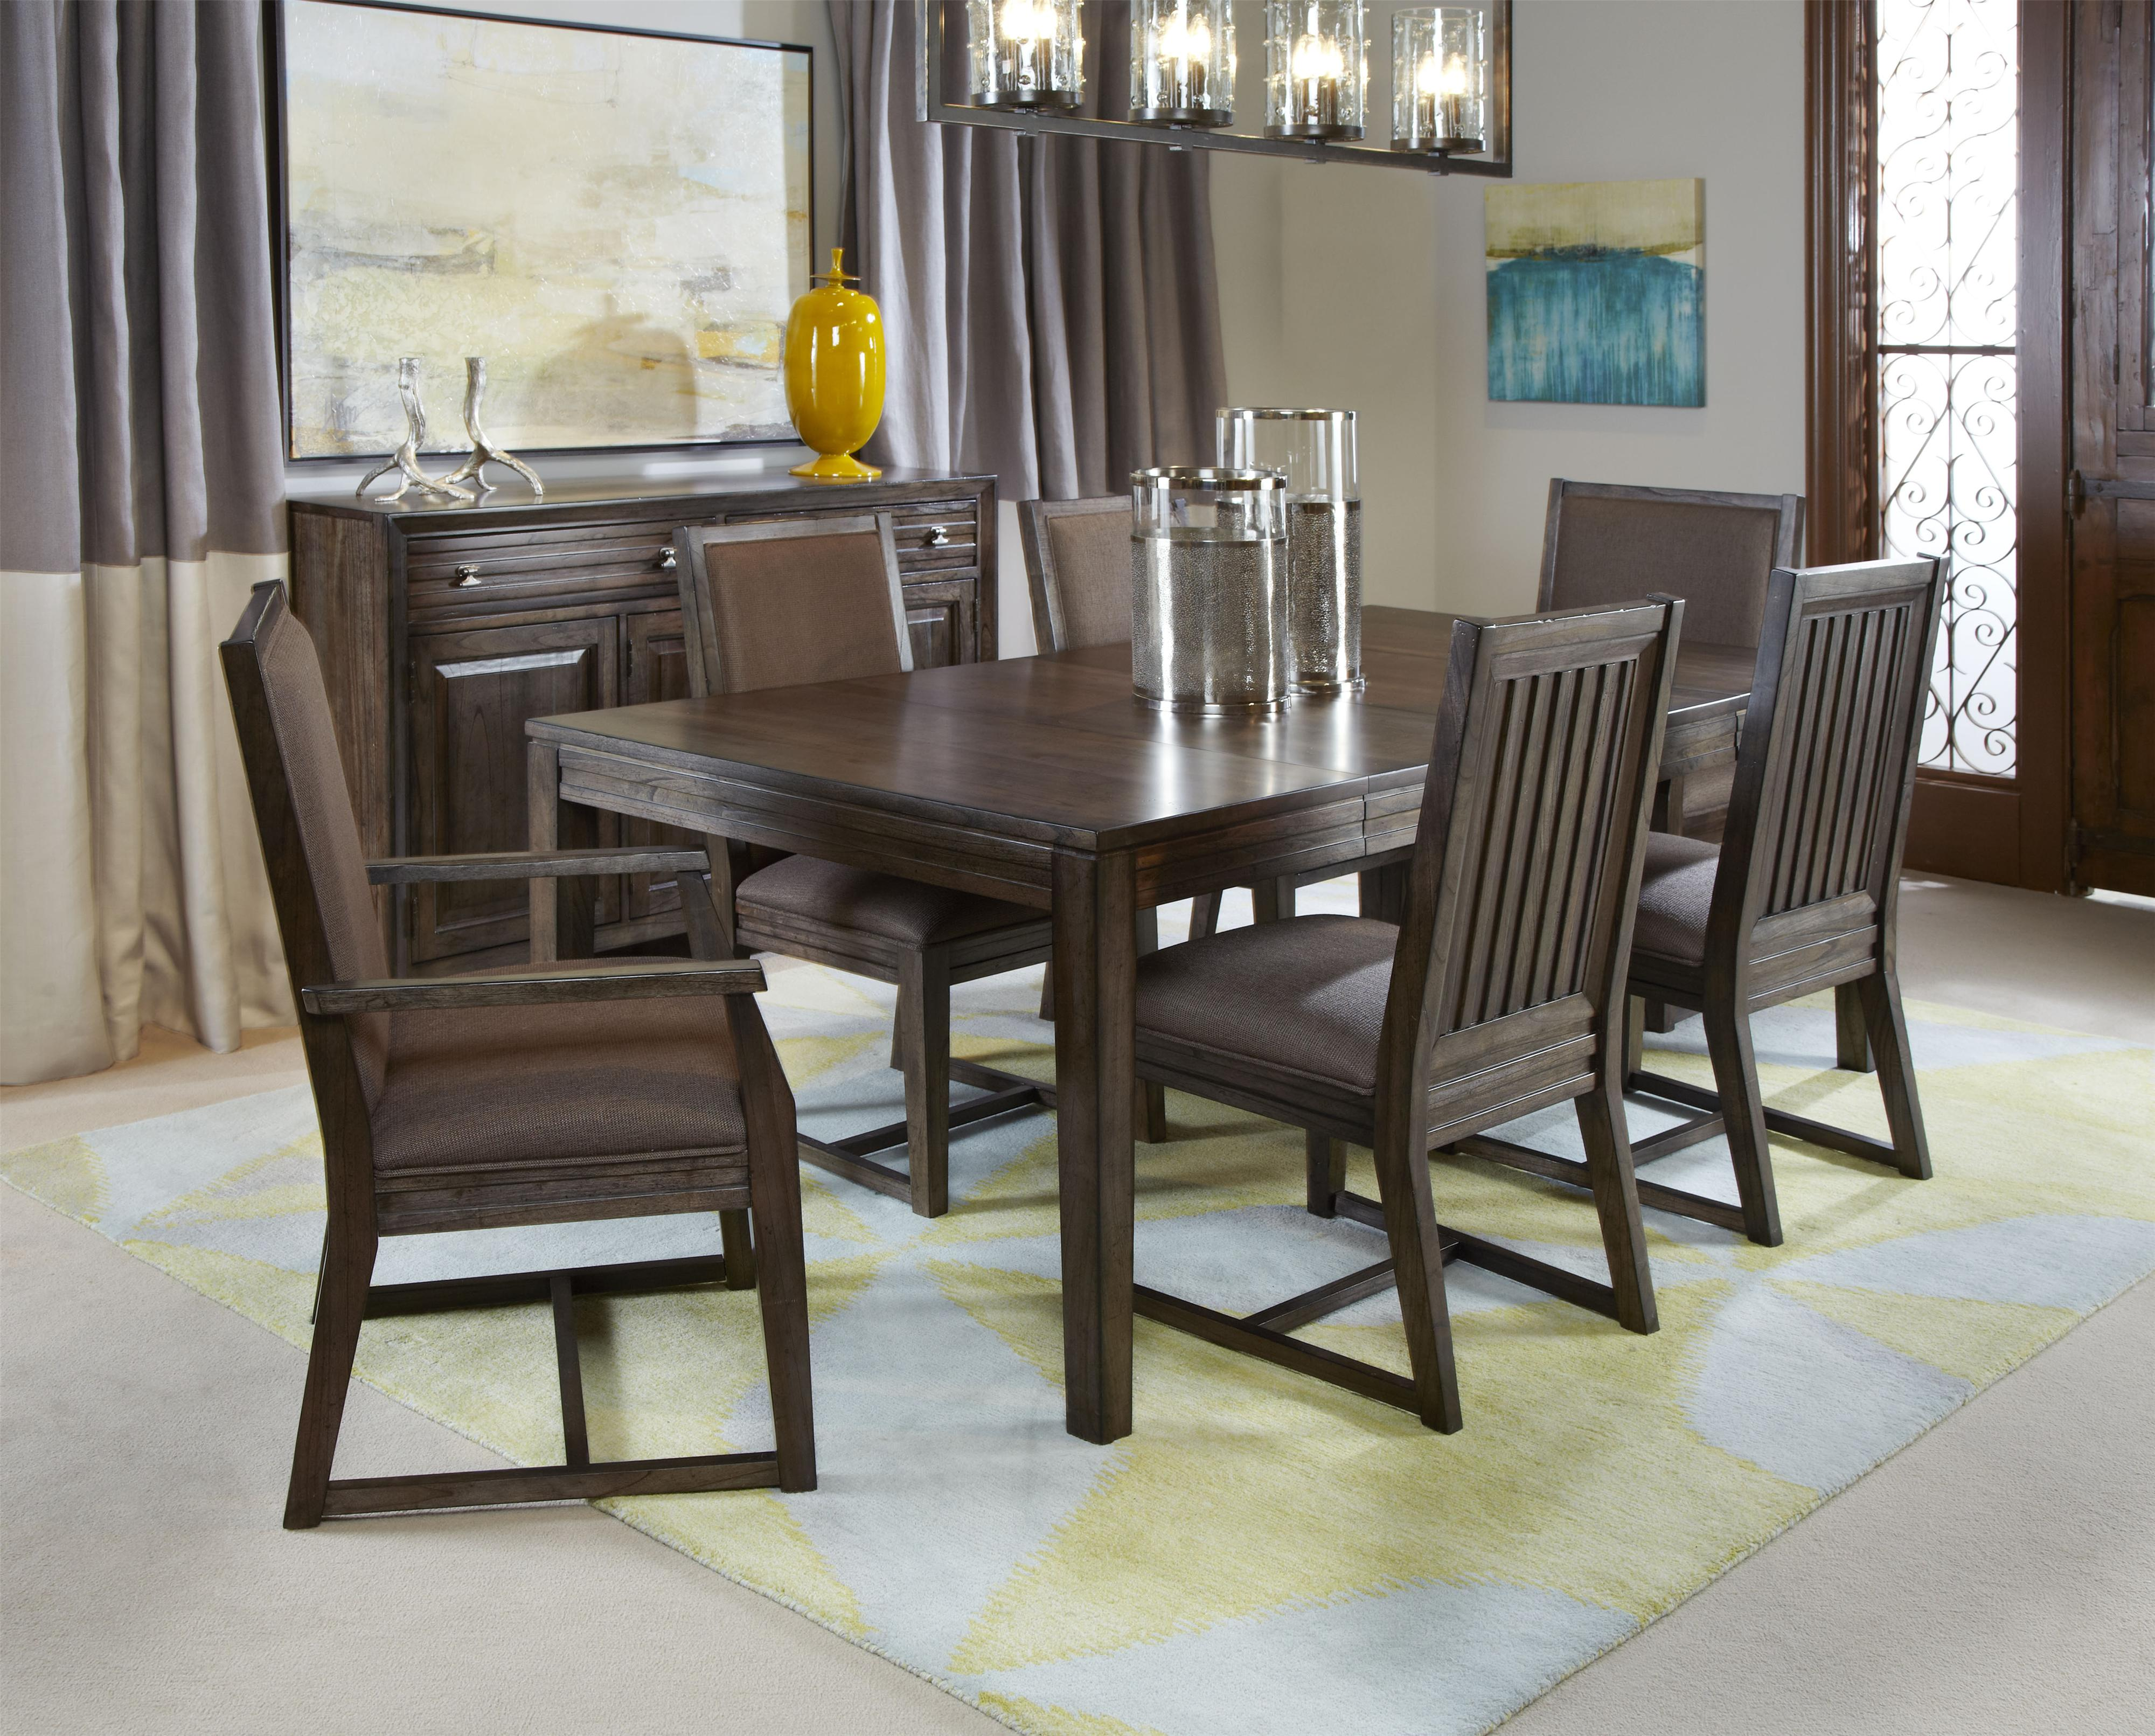 https://s3-us-west-2.amazonaws.com/fdn-images-2/img/products%2Fkincaid_furniture%2Fcolor%2Fmontreat%20-%201155234761_84-054%2B2x066%2B4x065-b5.jpg